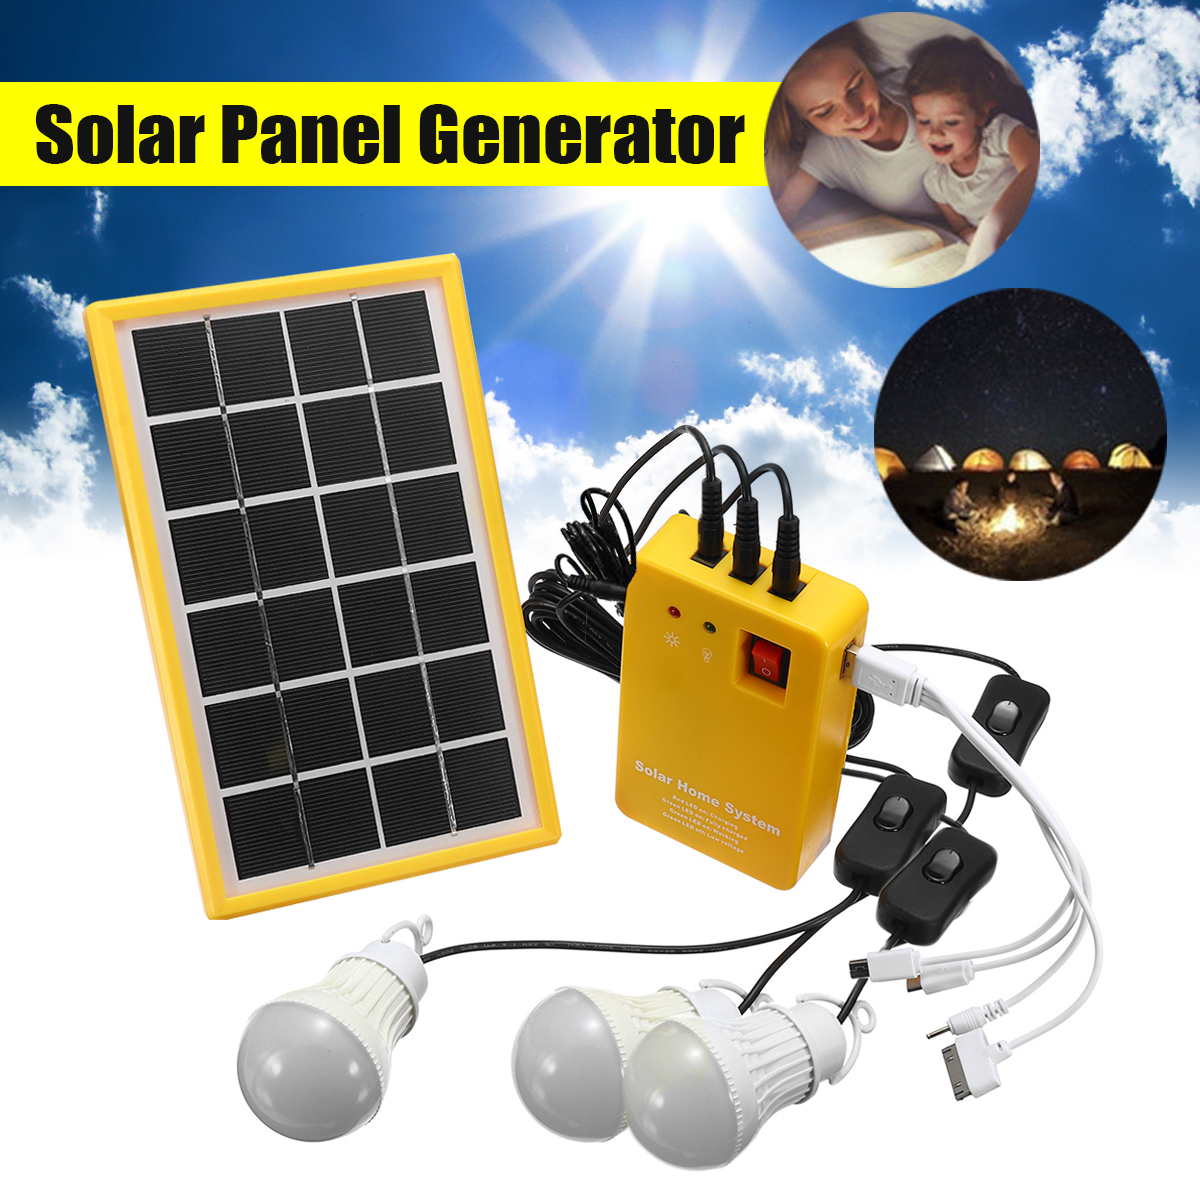 Solar Power Panel Generator Kit 5V USB Charger Home System with 3 LED Bulbs Light Indoor/Outdoor Lighting Over Discharge ProtectSolar Power Panel Generator Kit 5V USB Charger Home System with 3 LED Bulbs Light Indoor/Outdoor Lighting Over Discharge Protect